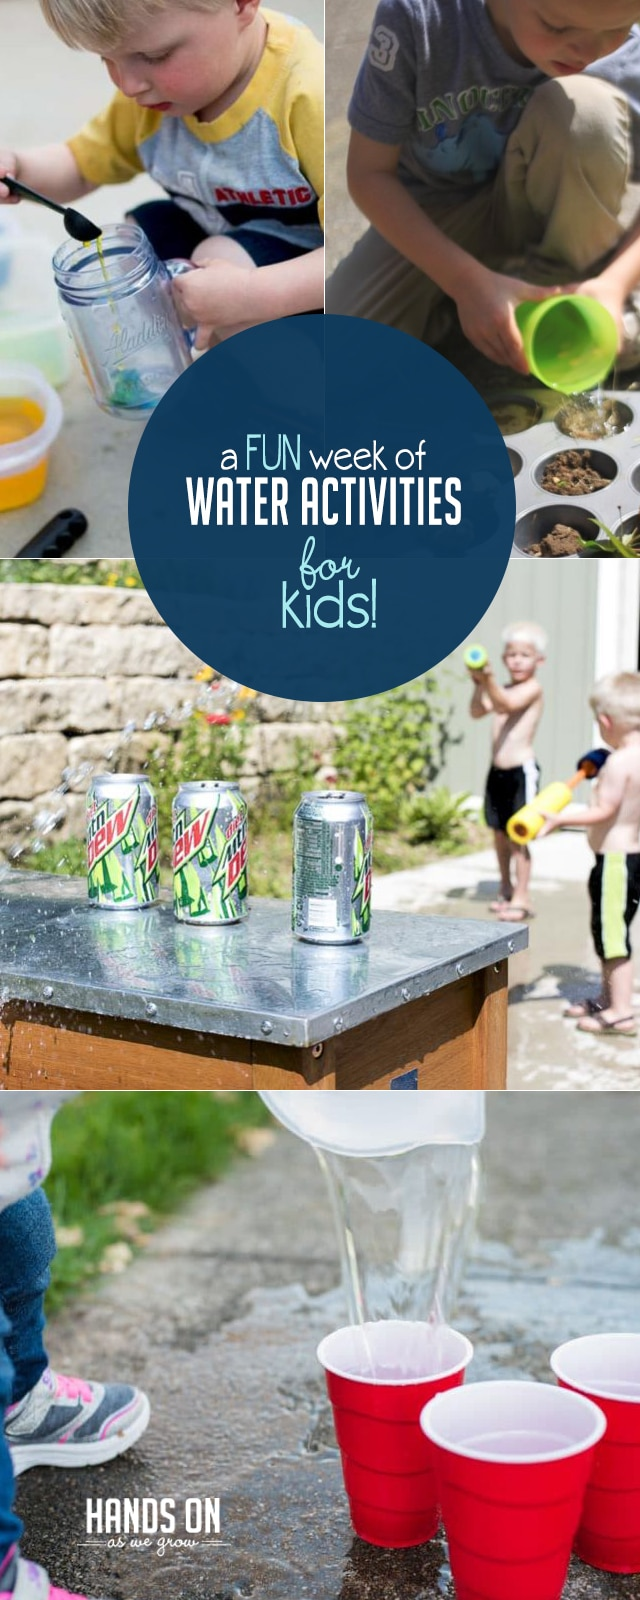 A week of fun water activities for kids to do - these look like so much fun!